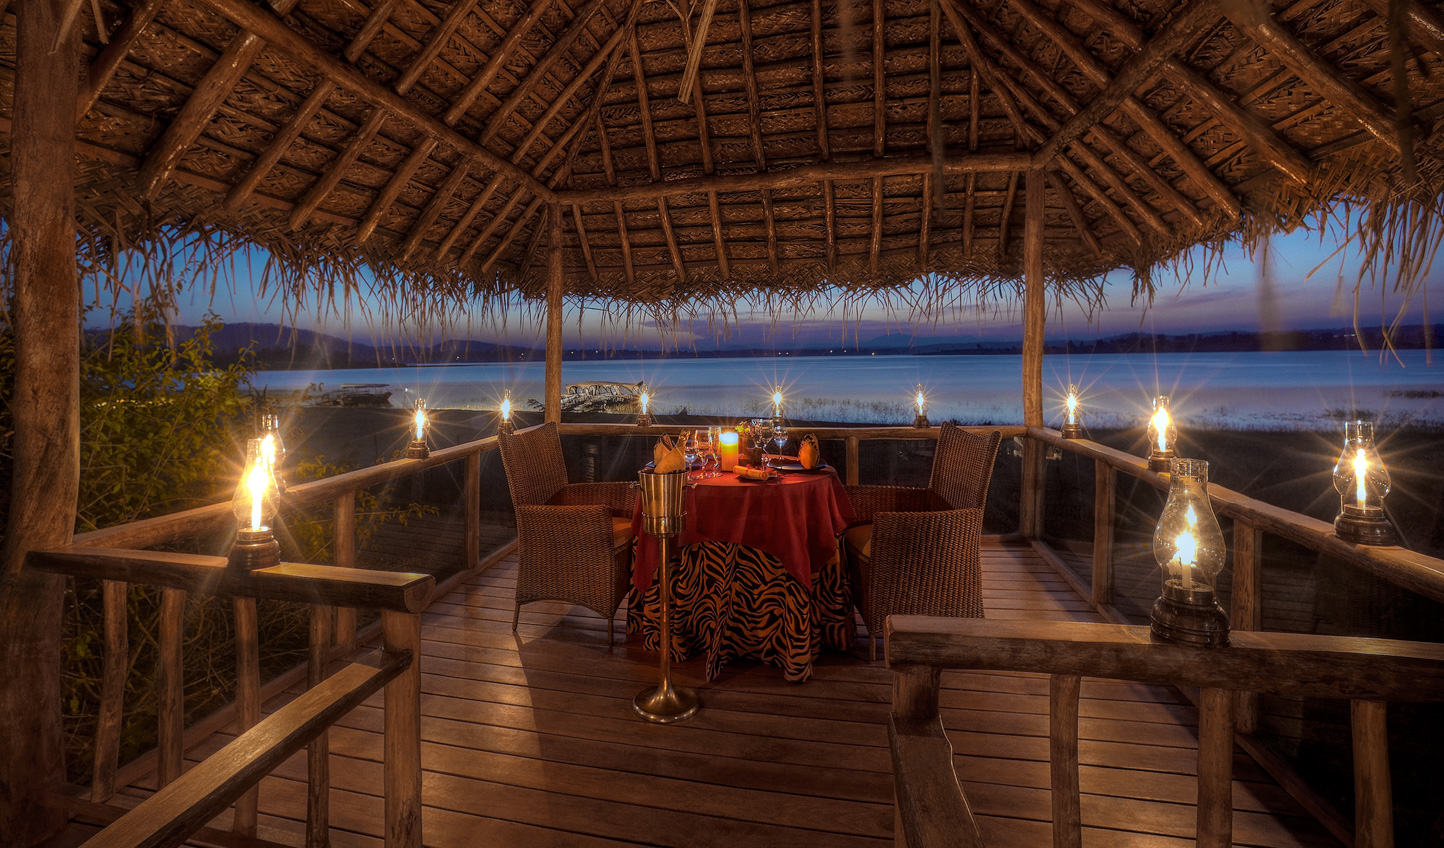 Dine By the Kabini, surrounded by the soft soulful melodies of the river